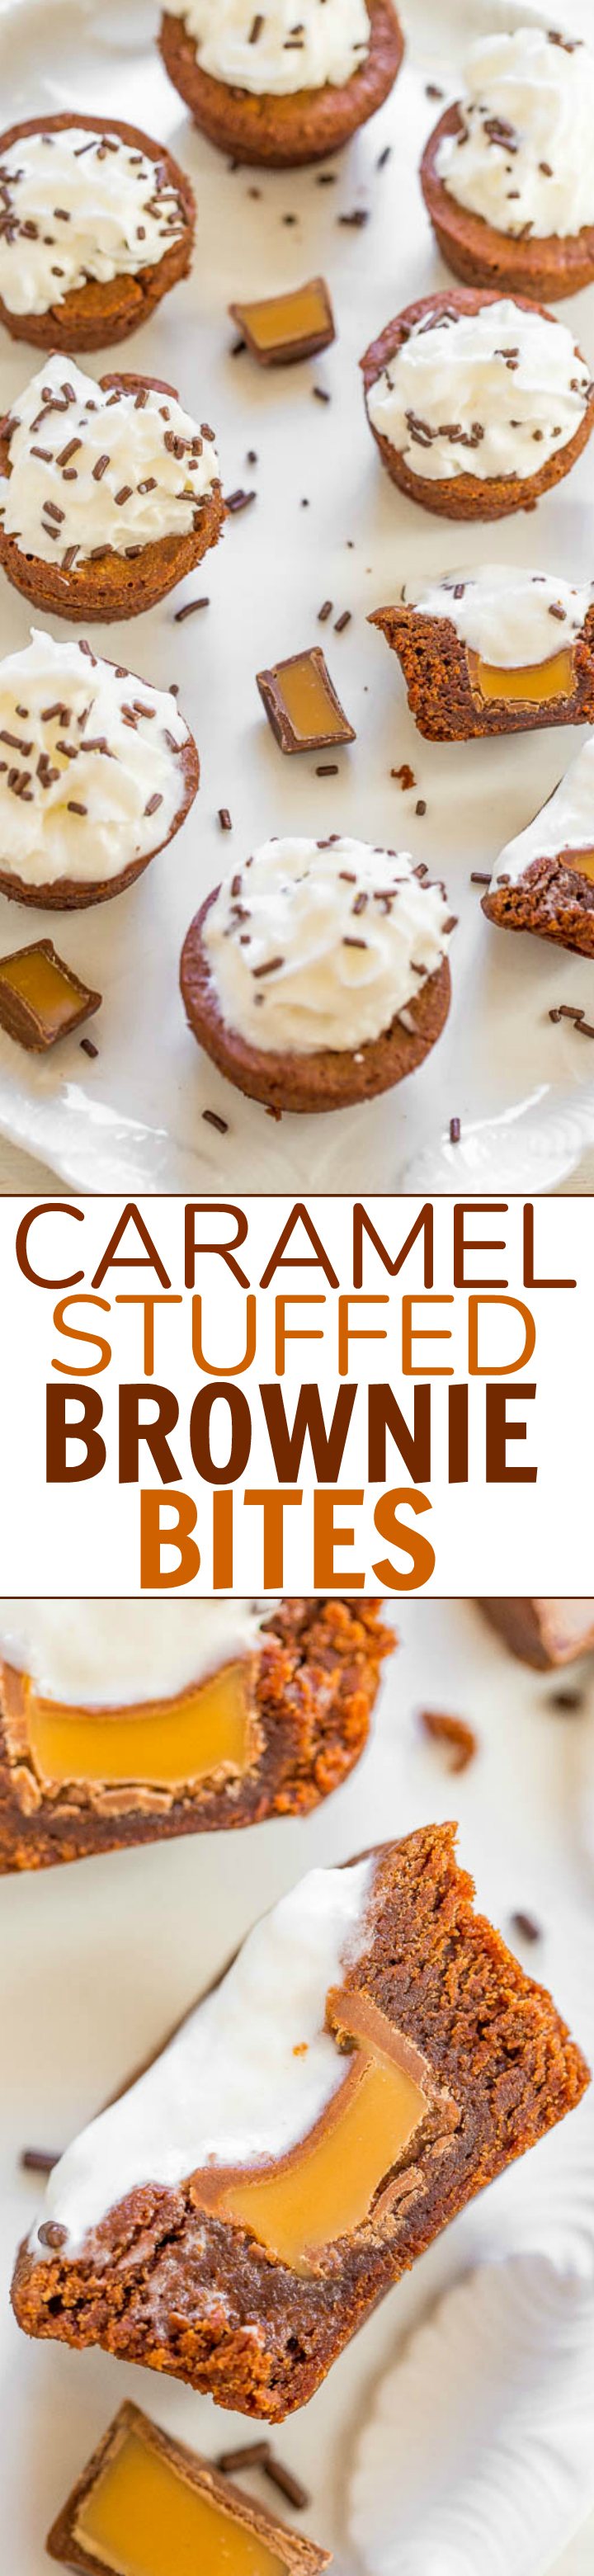 Caramel Stuffed Brownie Bites - An EASY, no mixer recipe for homemade brownie bites stuffed with CARAMEL and topped with whipped cream and sprinkles!! Rich, FUDGY, decadent, and DELISH!!